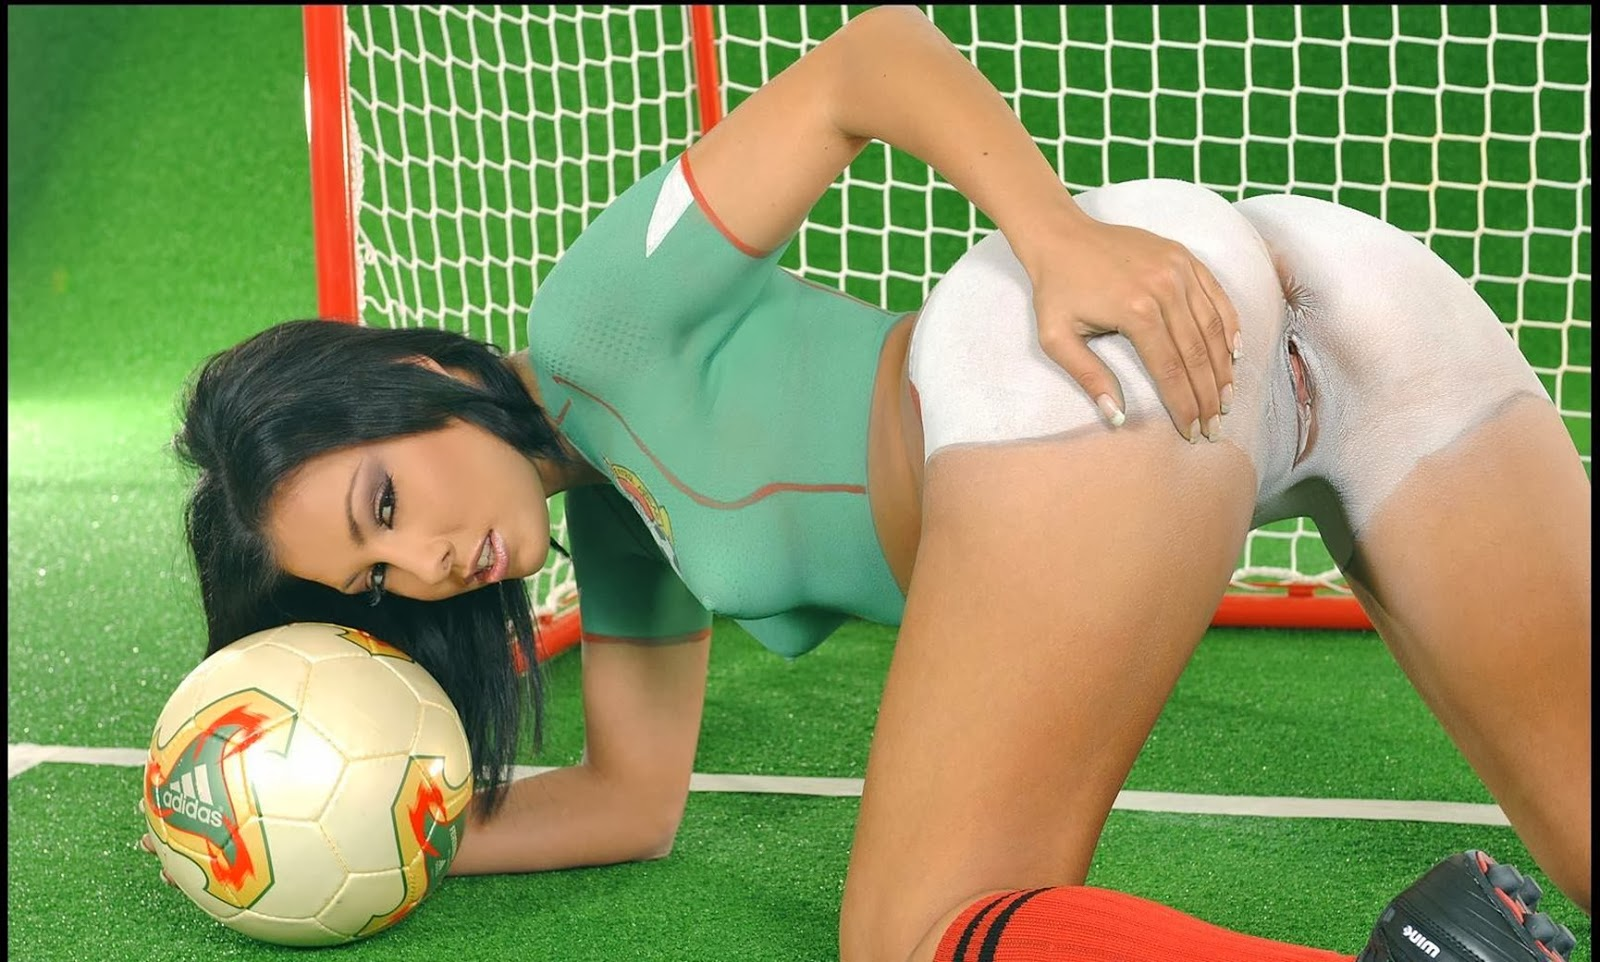 Football hotties nude blowjob